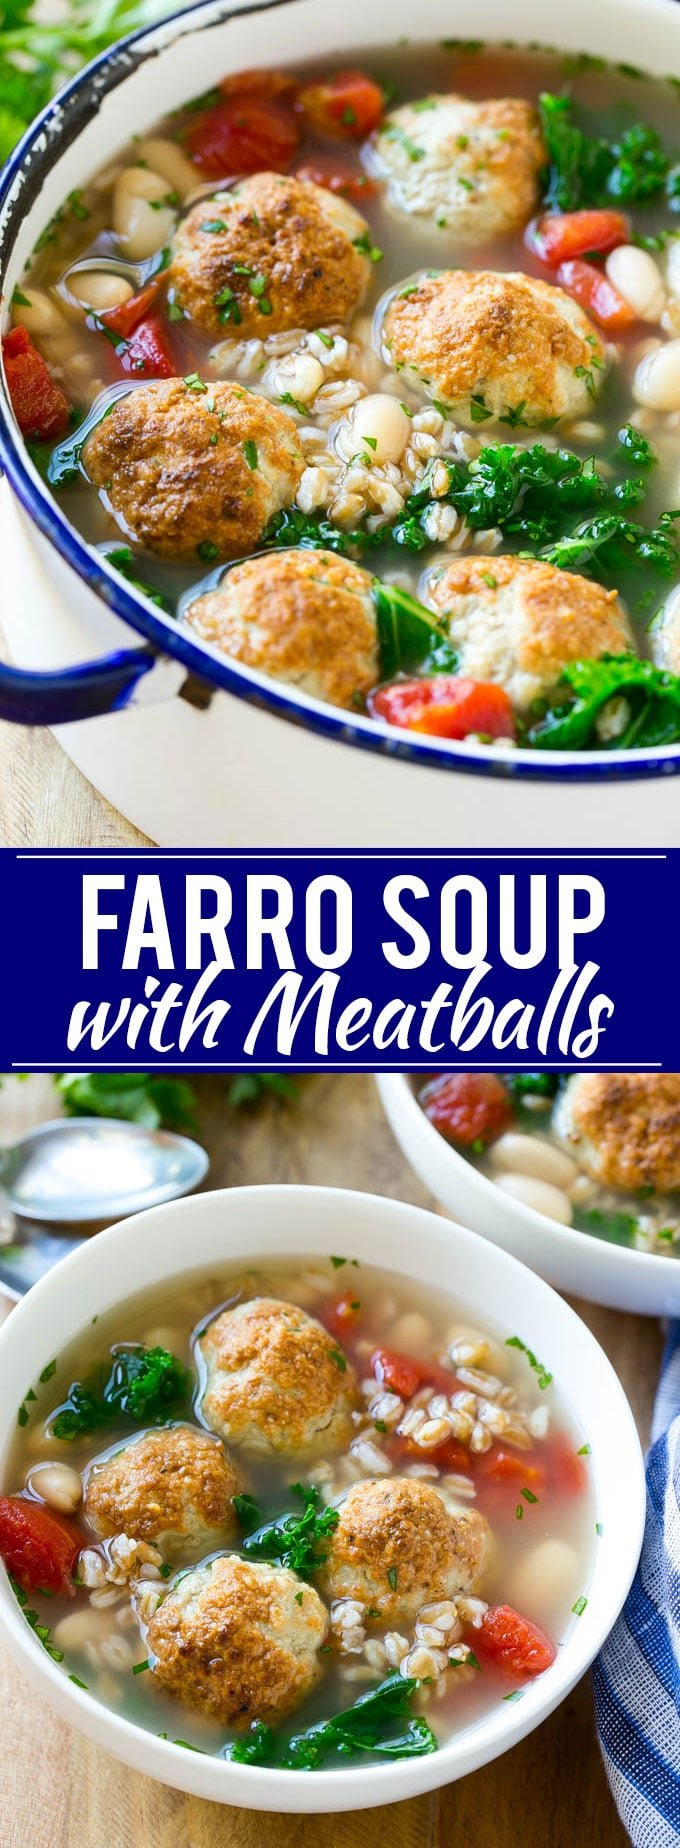 Farro Soup with Meatballs Recipe | Farro Recipe | Meatball Soup | Healthy Soup Recipe